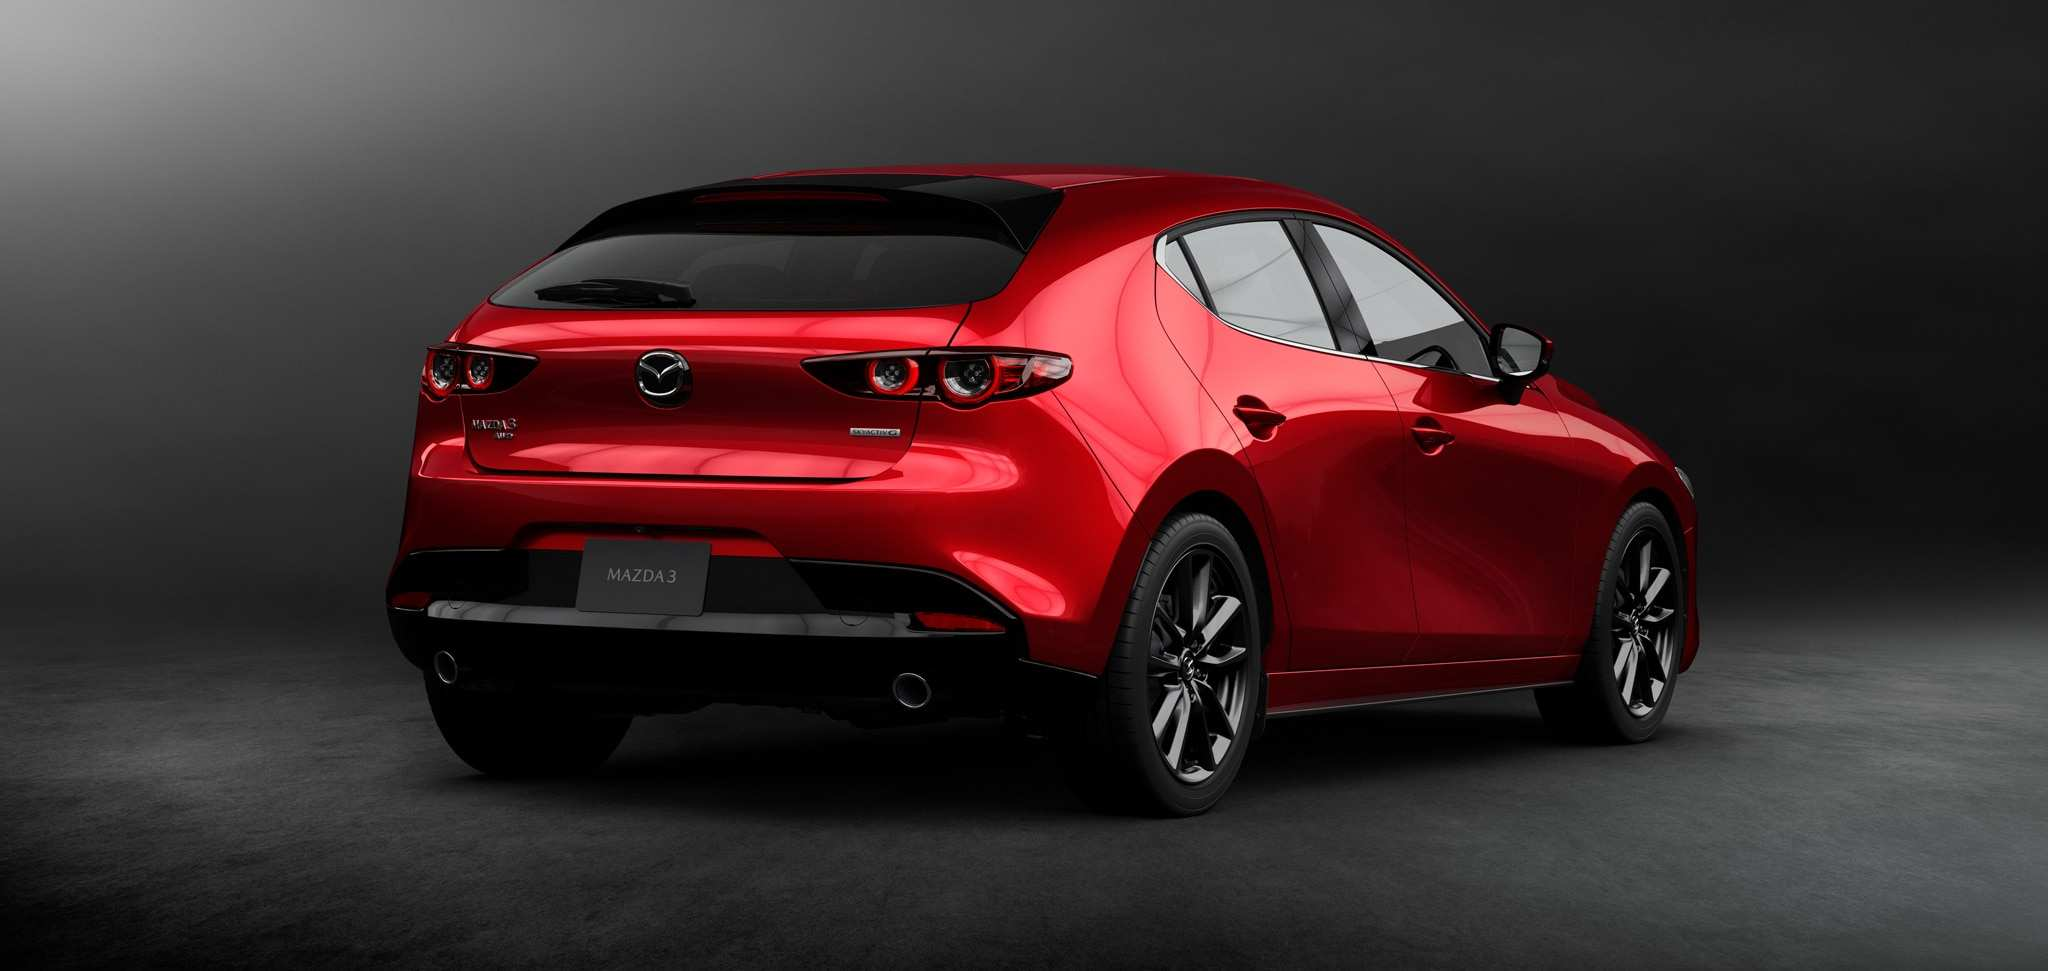 77 The 2020 Mazda 3 Hatch Exterior and Interior for 2020 Mazda 3 Hatch